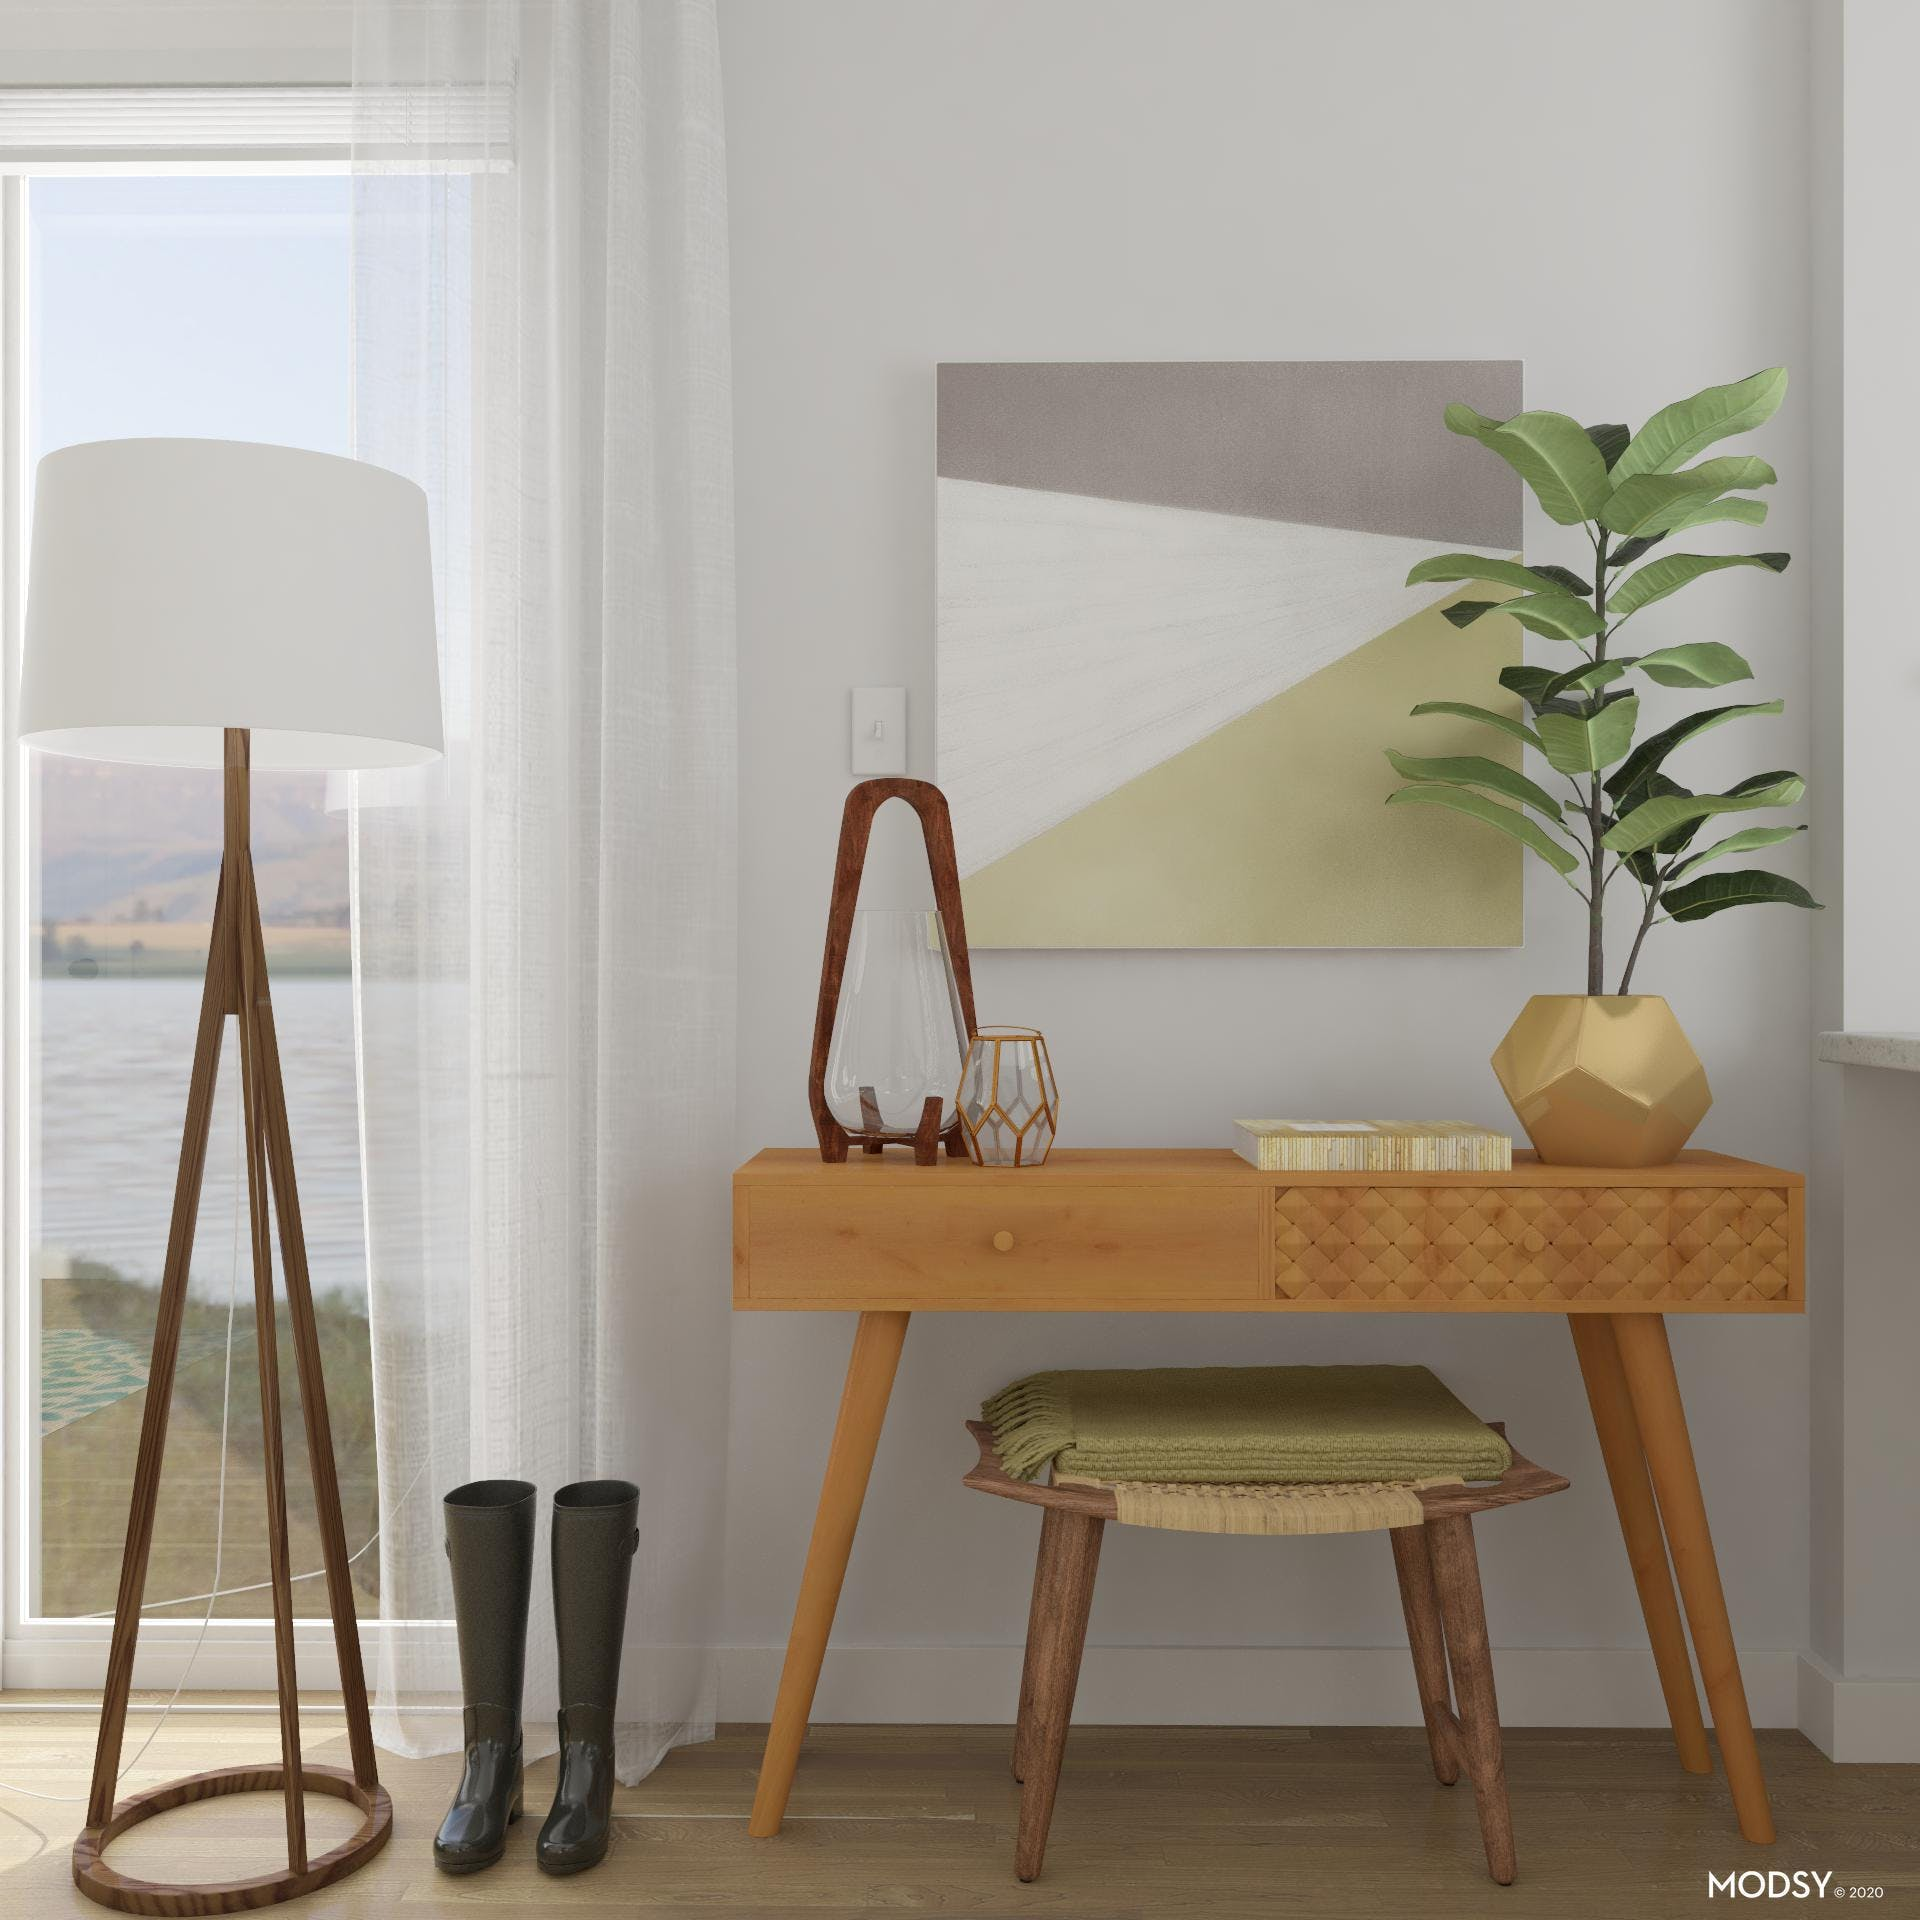 Styling A Mid-Century Modern Console